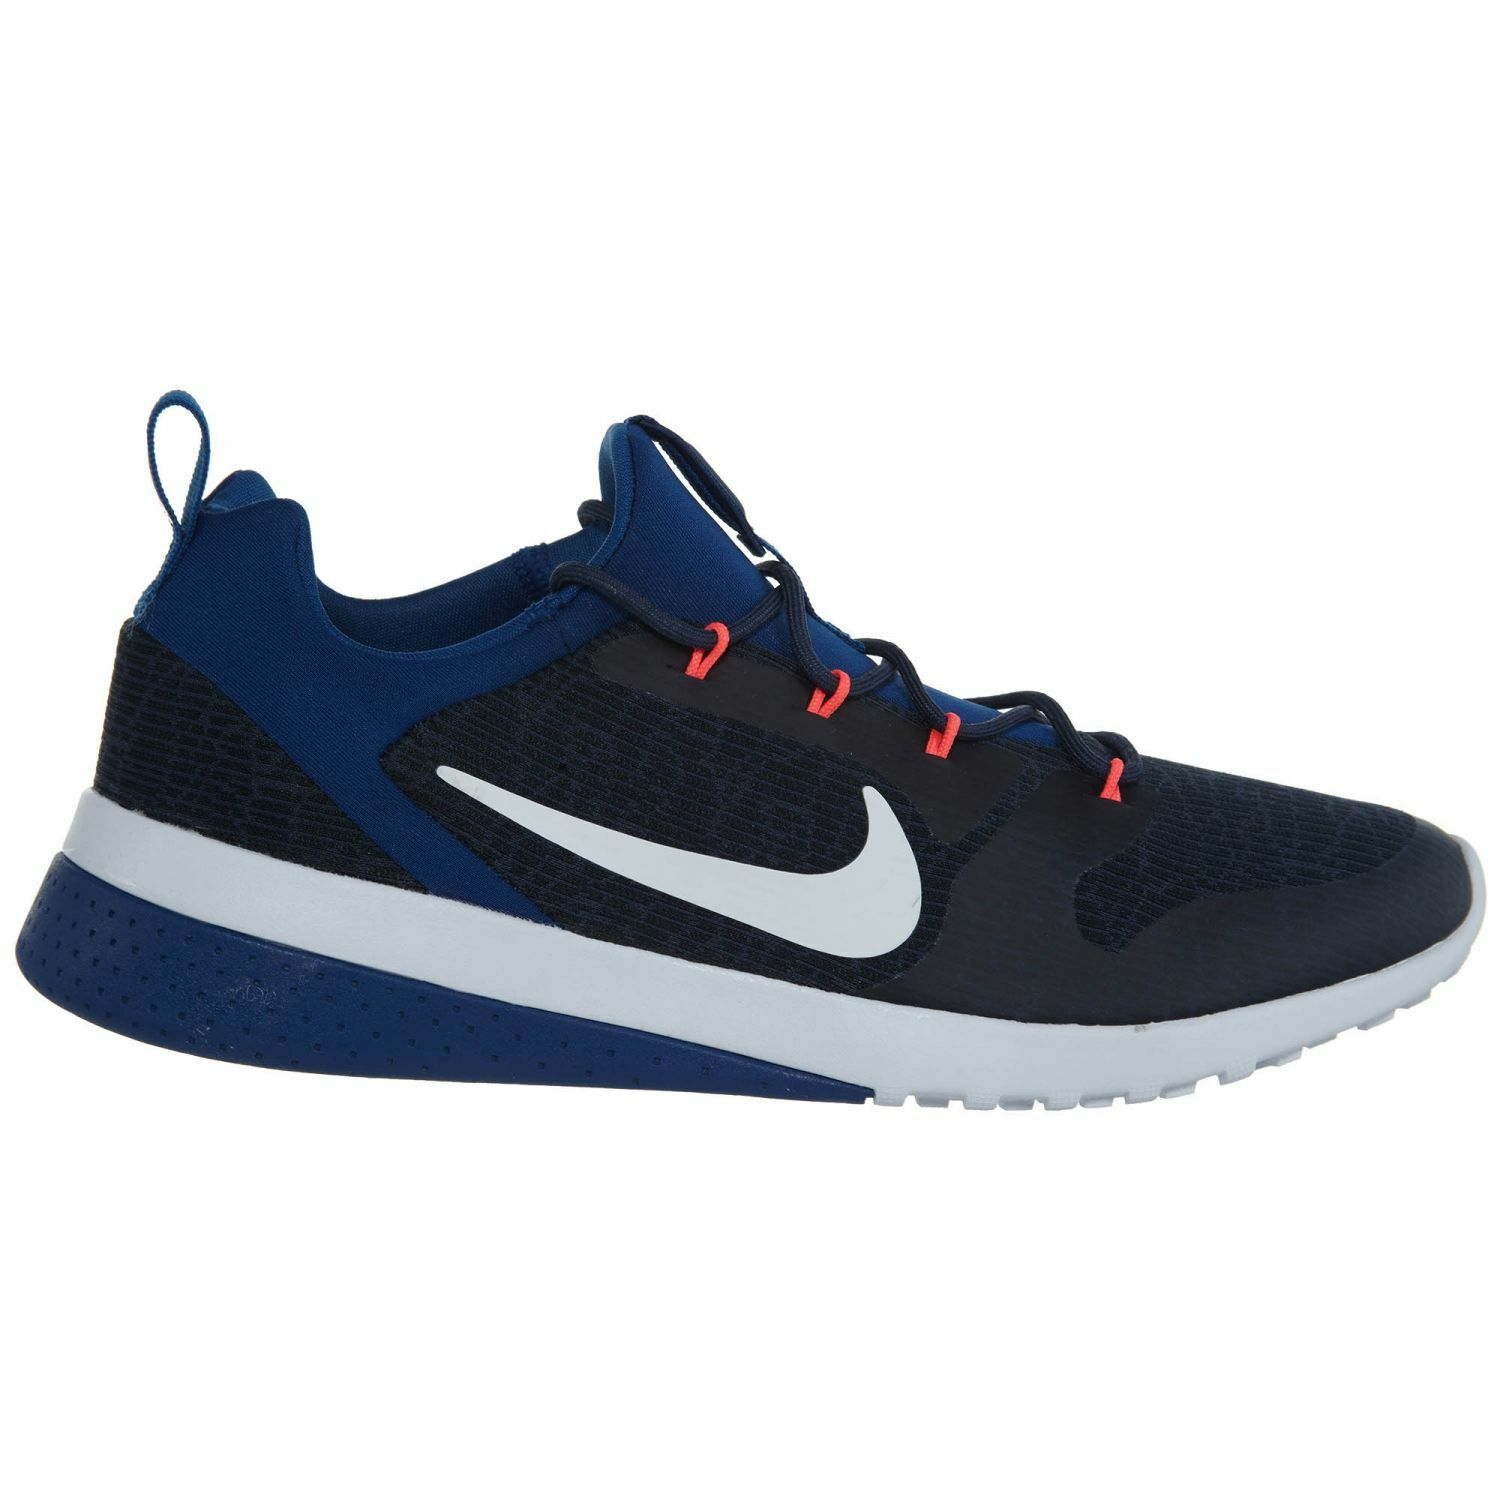 Nike CK Racer Mens 916780-403 Obsidian Gym Gym Obsidian Blue Athletic Running Shoes Size 11 2e2c52